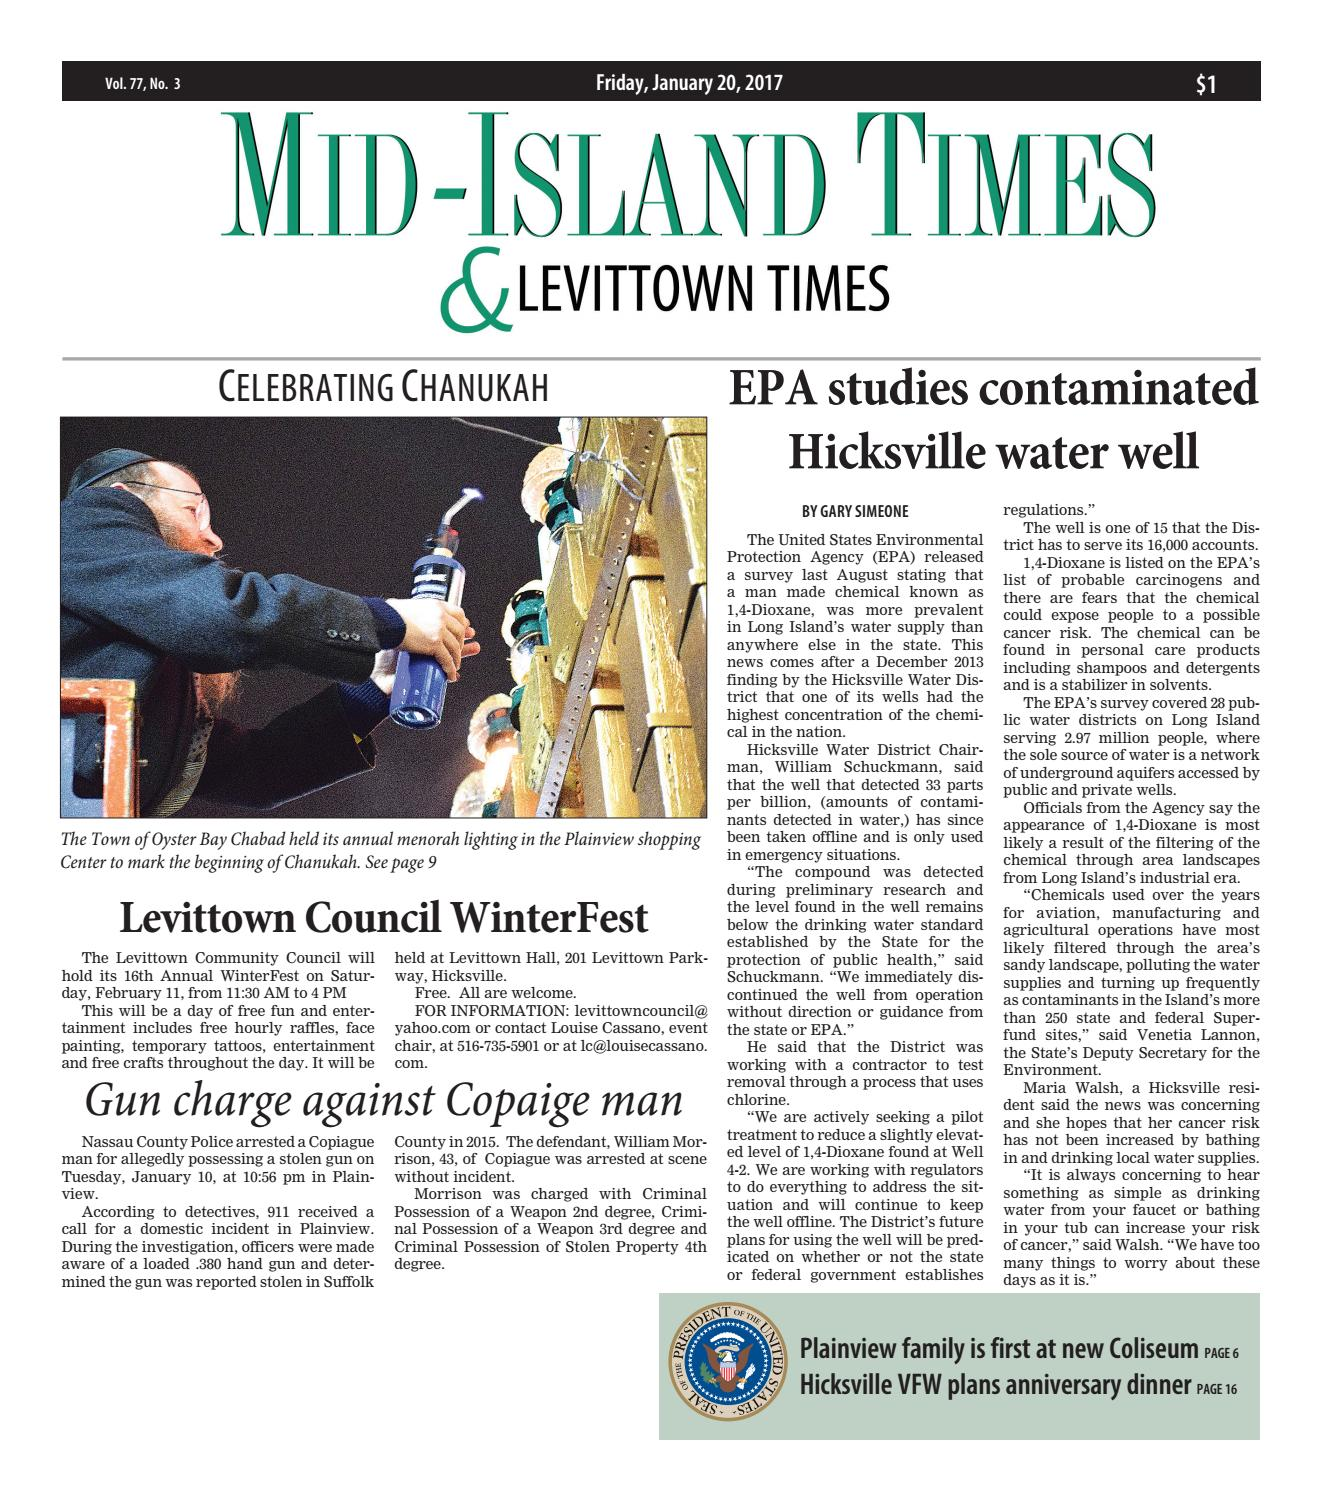 The Mid-Island Times & Levittown Times by Litmor Publishing - issuu